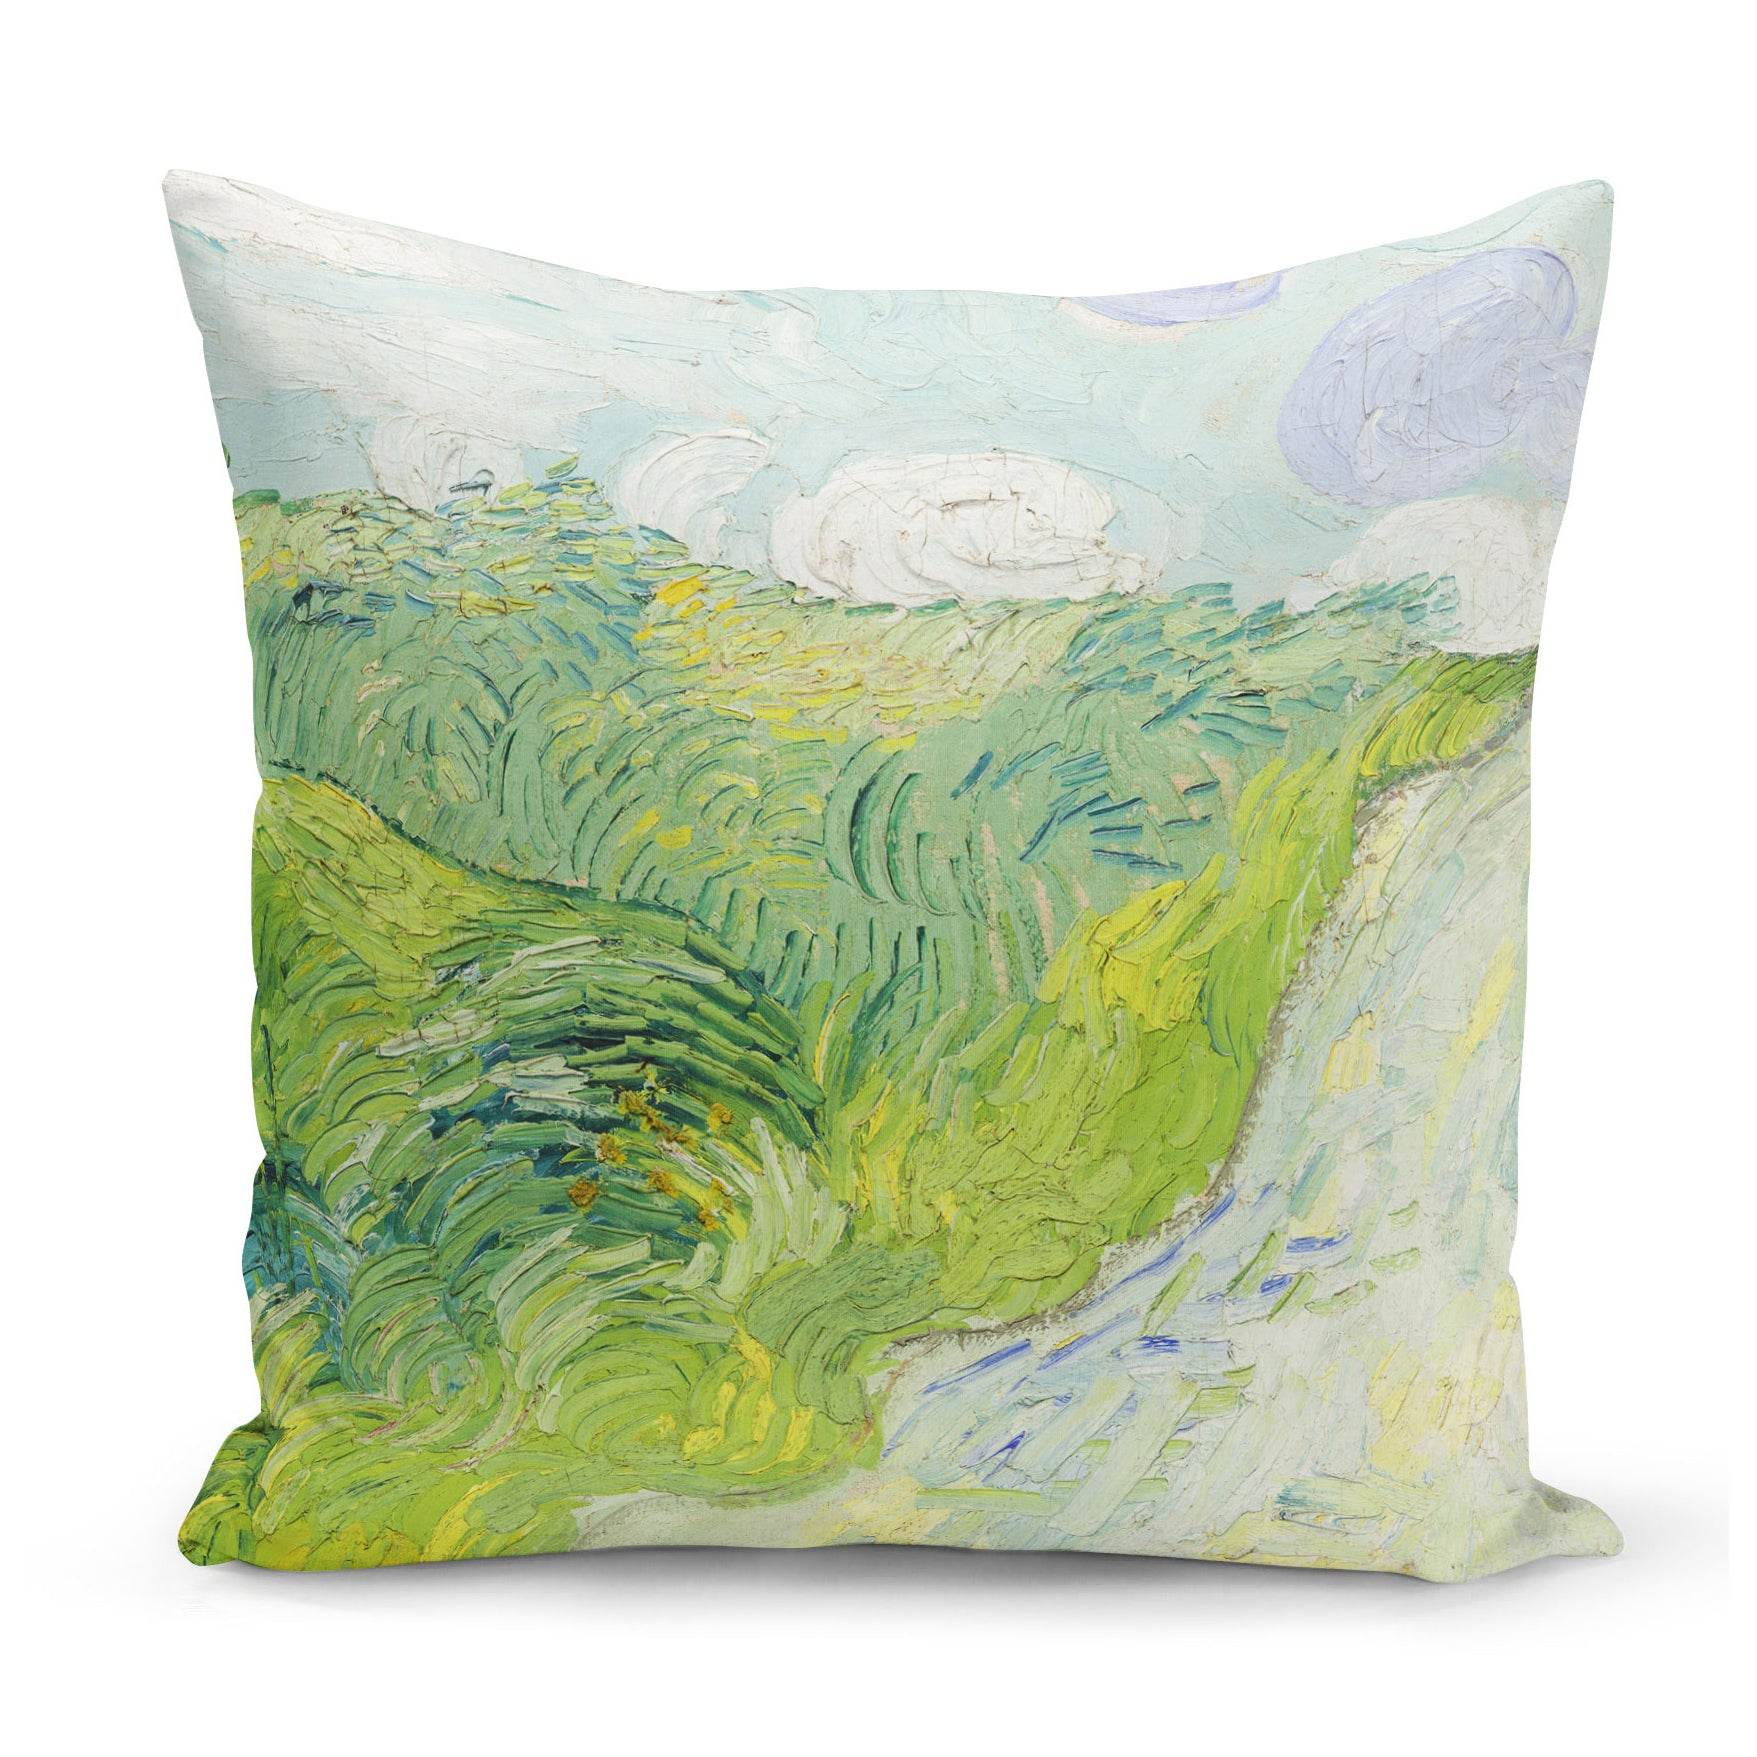 paint effect art cushion in pale green, showing Van Gogh's wheat field painting from 1890